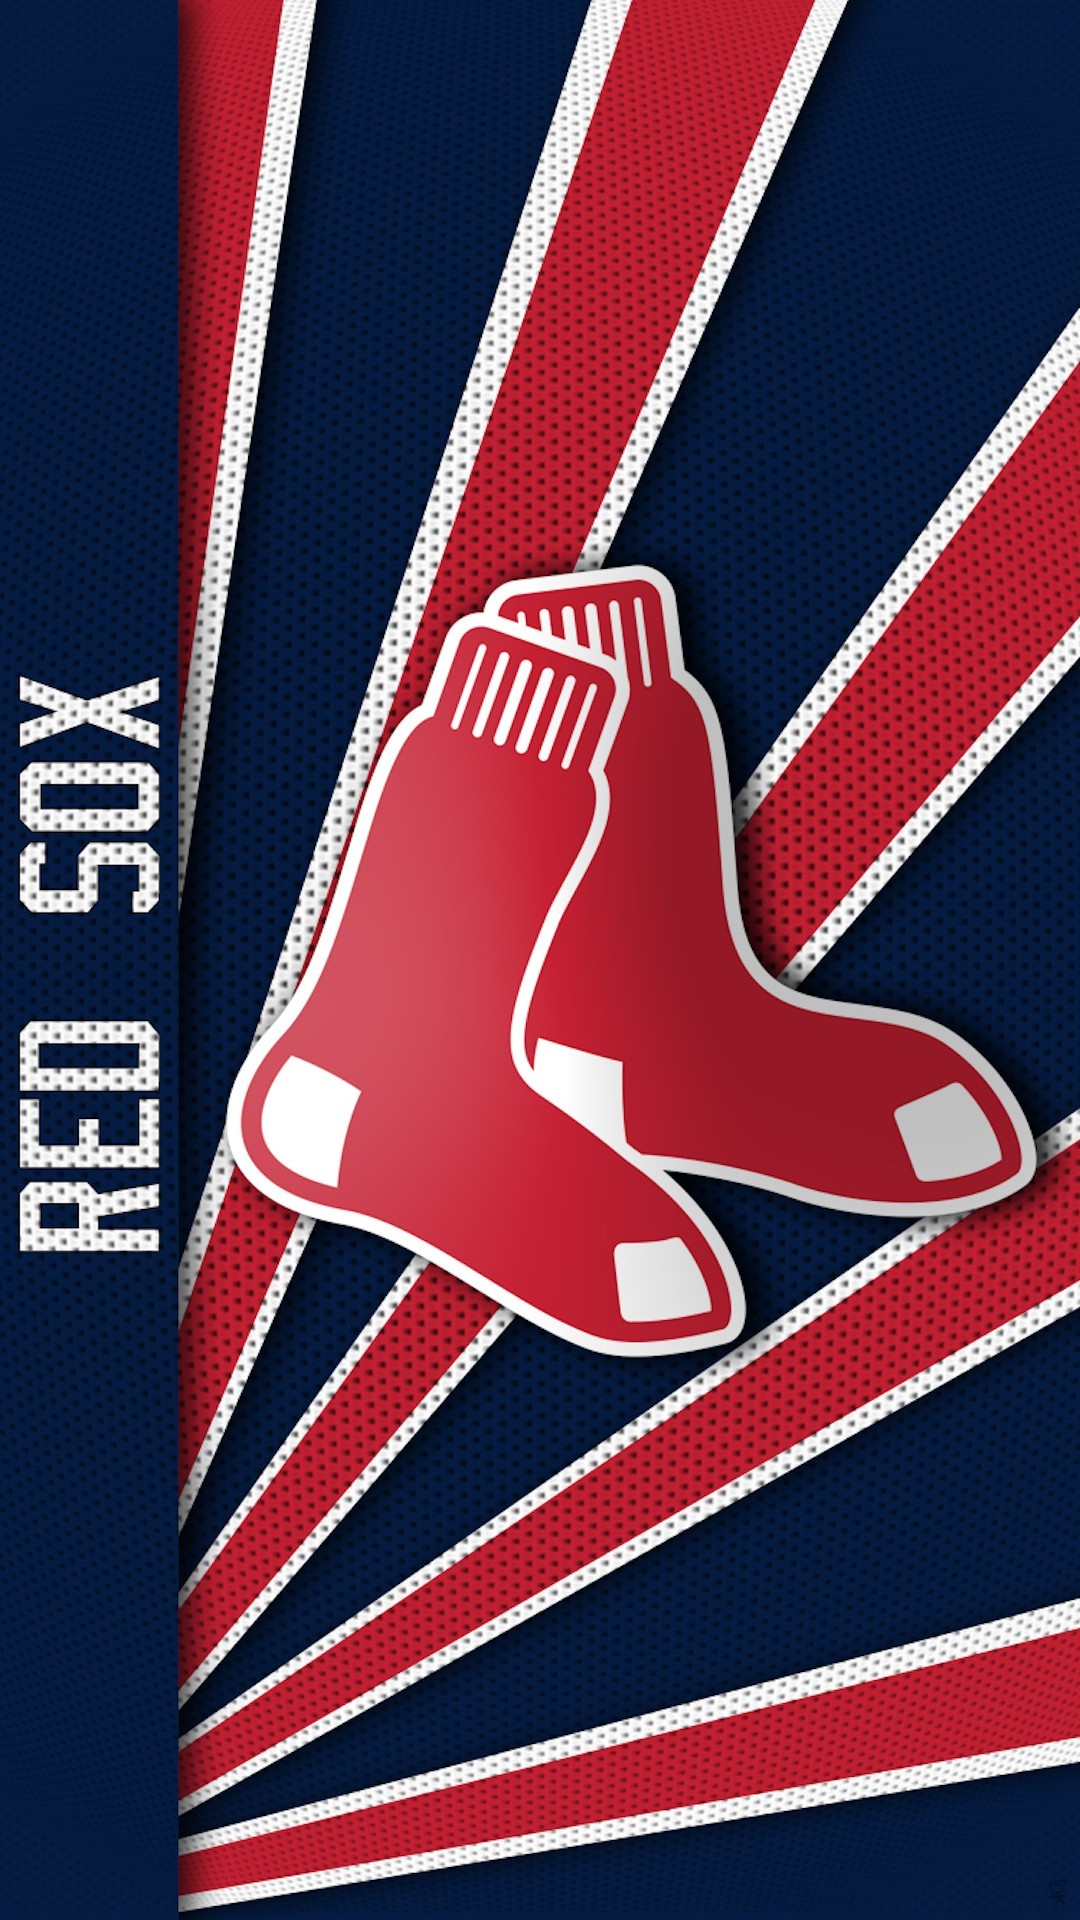 Boston red sox wallpaper screensavers 61 images - Red sox iphone background ...